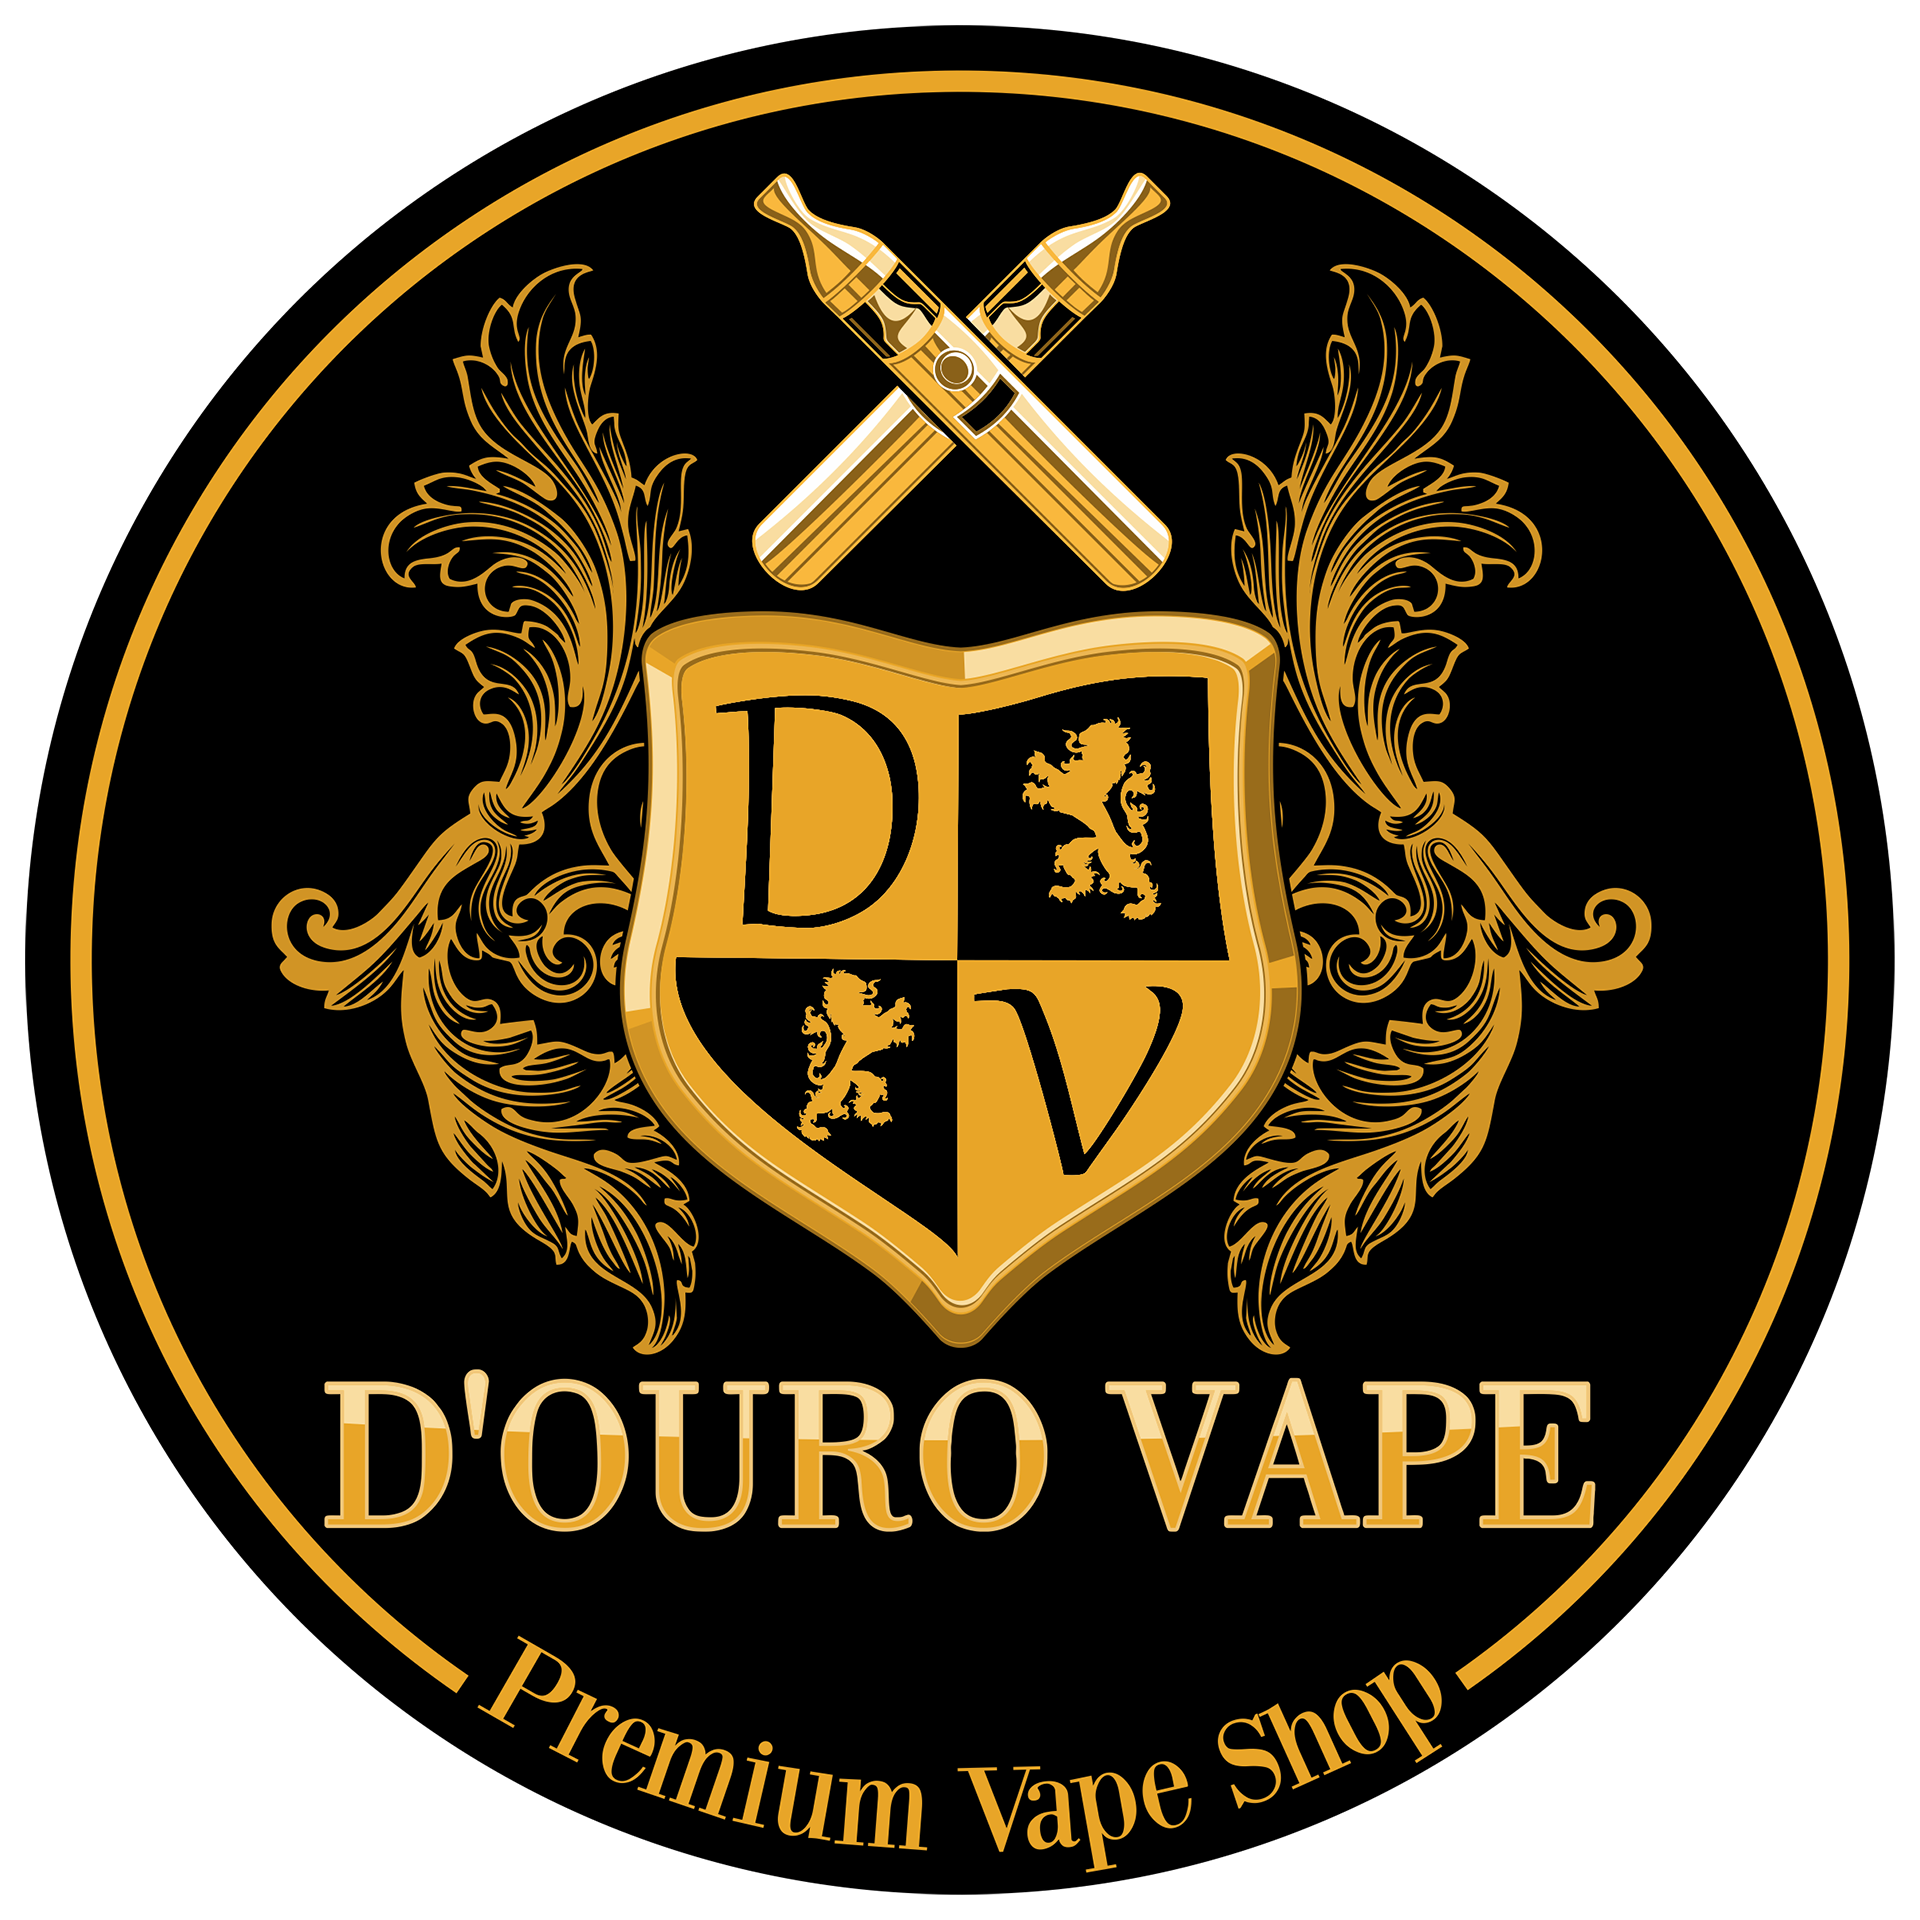 D'ouro Vape